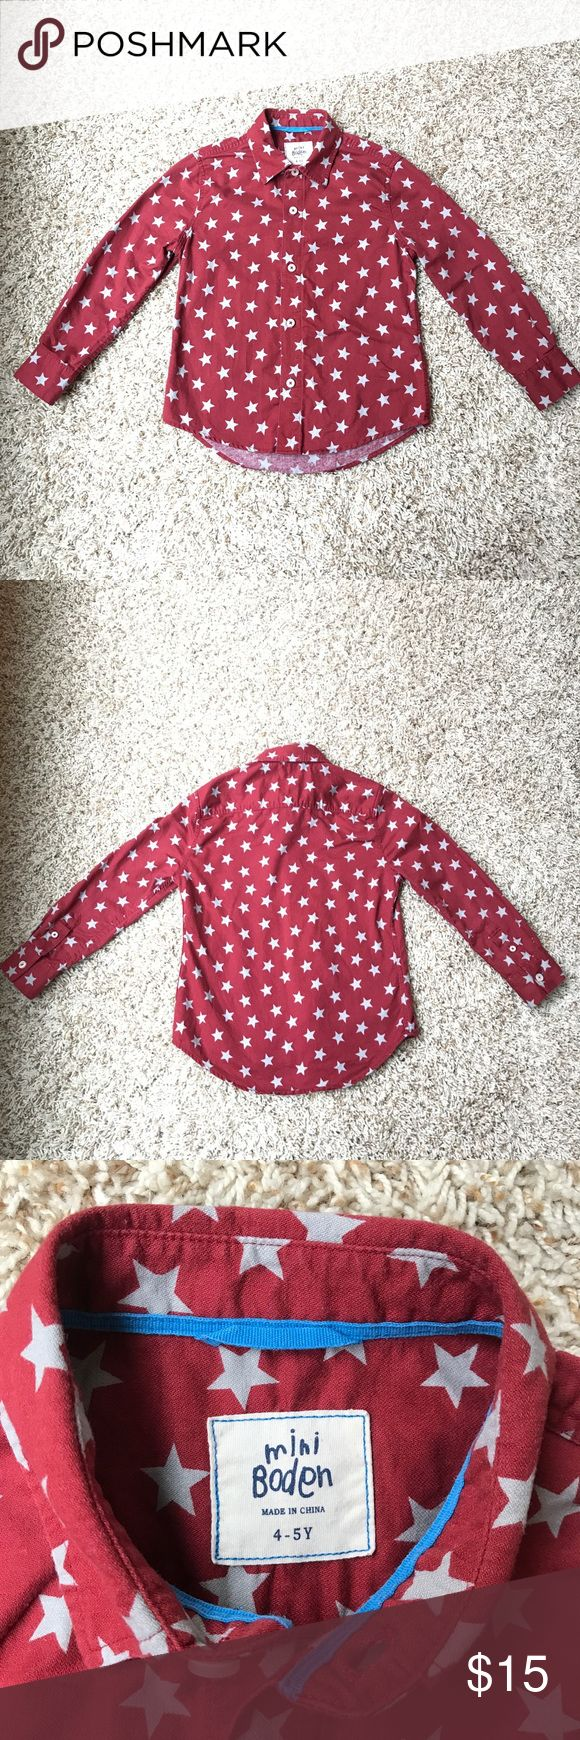 Mini Boden 4-5Y star button down Perfect for the holidays! Burgundy with gray stars. 4-5Y Mini Boden button down in EUC. Add a silver bow tie for the cutest Christmas outfit! Smoke-free and pet-free home. Mini Boden Shirts & Tops Button Down Shirts